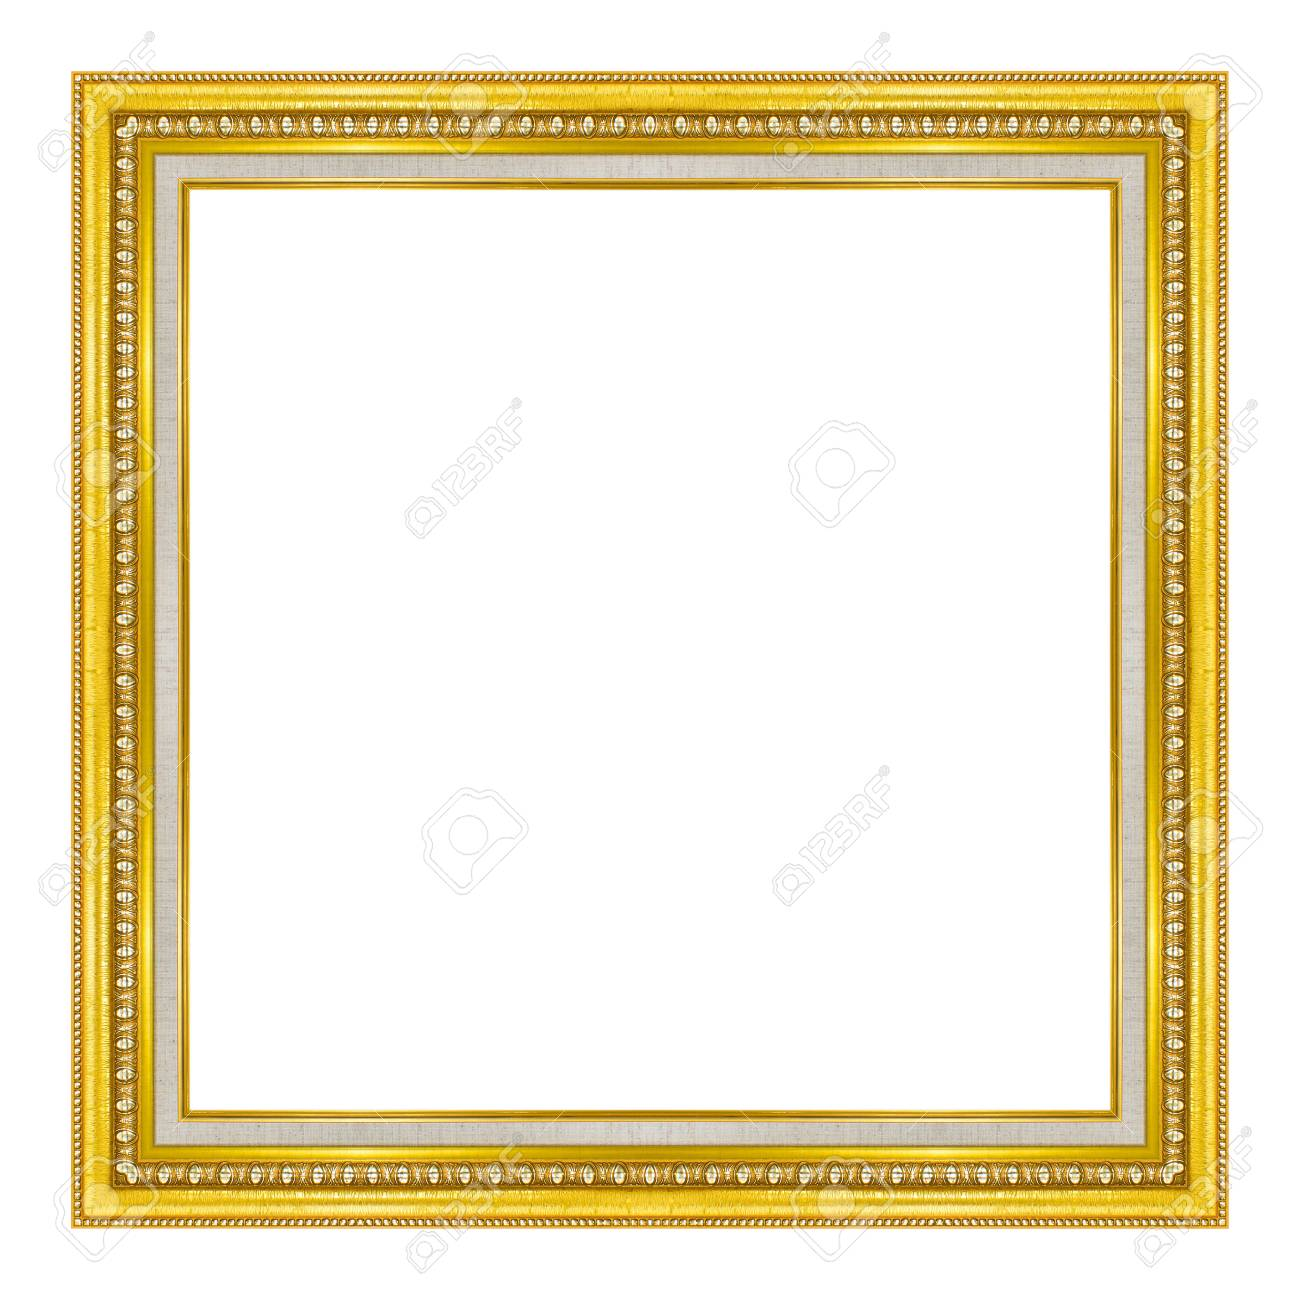 143e6bee43a5 picture frame wooden gold Carved pattern isolated on a white background.  Stock Photo - 77576696